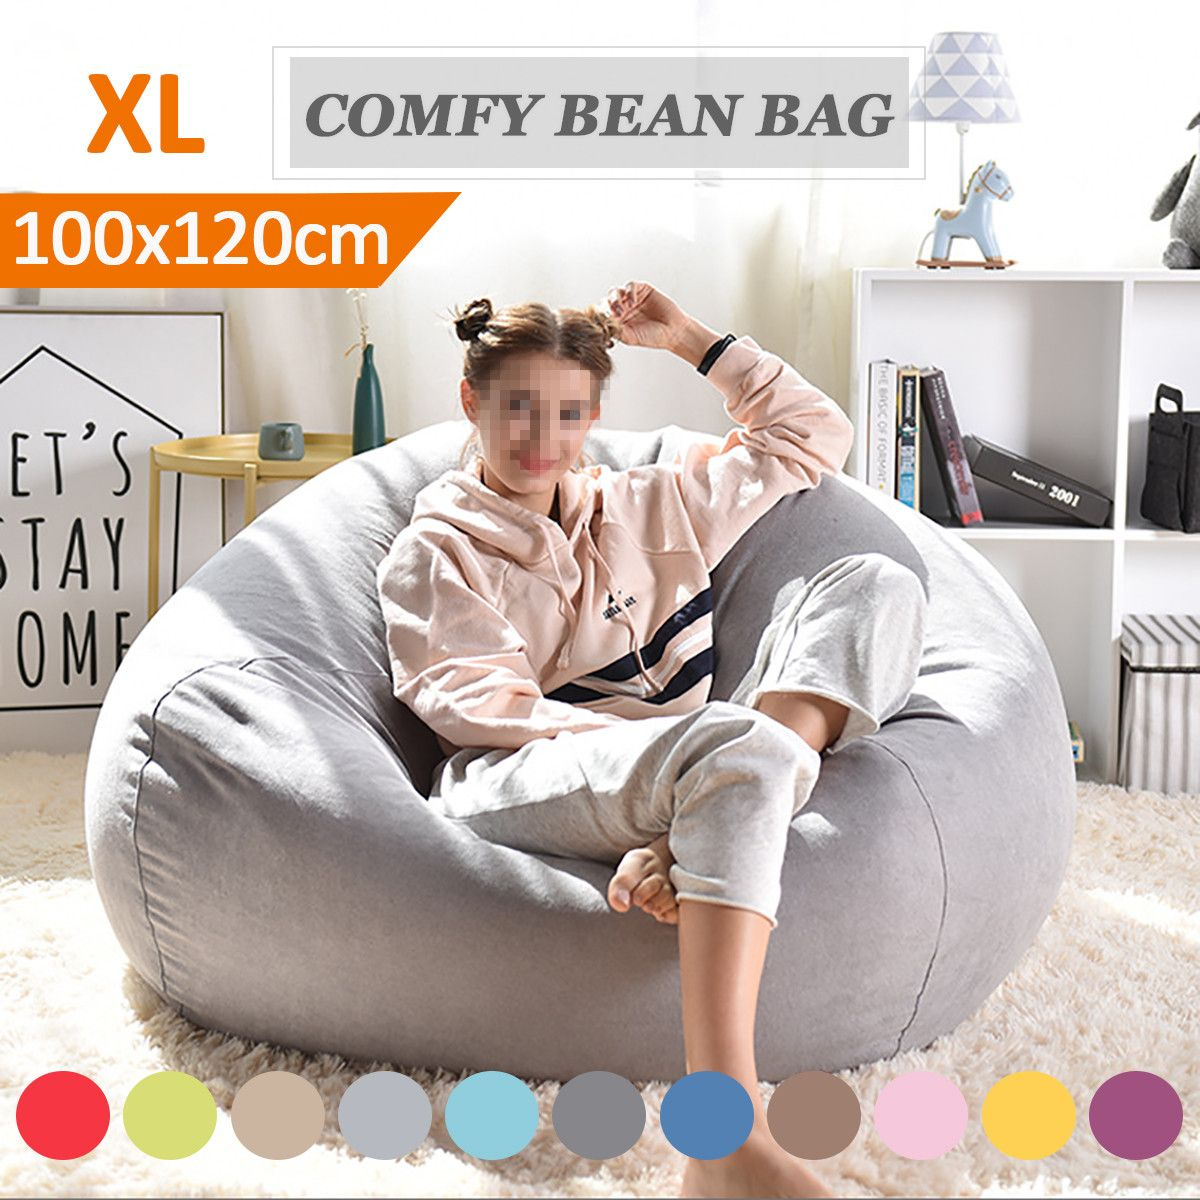 Lazy BeanBag Sofas Cover Chairs without Filler Linen Cloth Lounger Seat Bean Bag Pouf Puff Couch Tatami Living Room Furniture-in Bean Bag Sofas from Furniture on Aliexpress.com | Alibaba Group